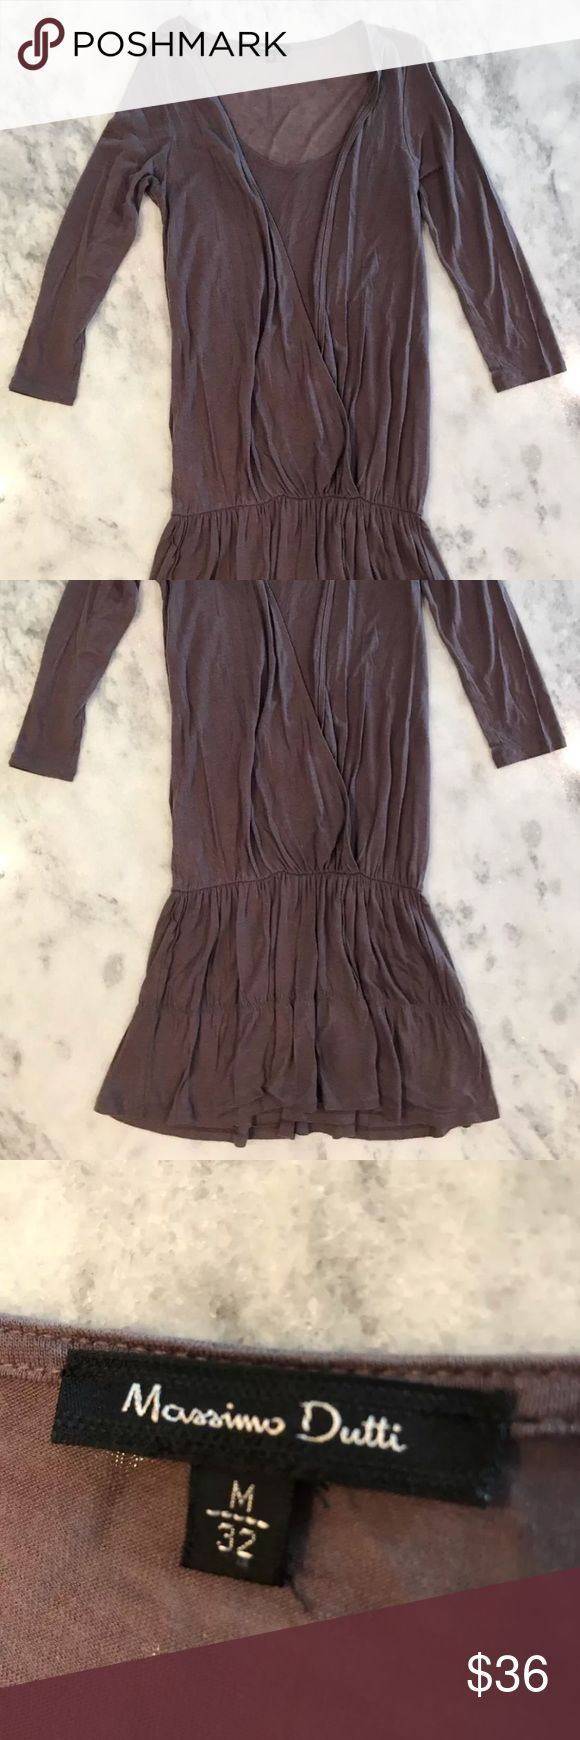 SALE🍂Lavender Blouson Mini Dress Massimo Dutti flowy lavender dress  3/4 Sleeve Blouson top, lined skirt, belt loops  Excellent pre-owned condition- no observed signs of wear, flaws or stains  Size Euro 36, medium, US approx. size 6 Massimo Dutti Dresses Mini